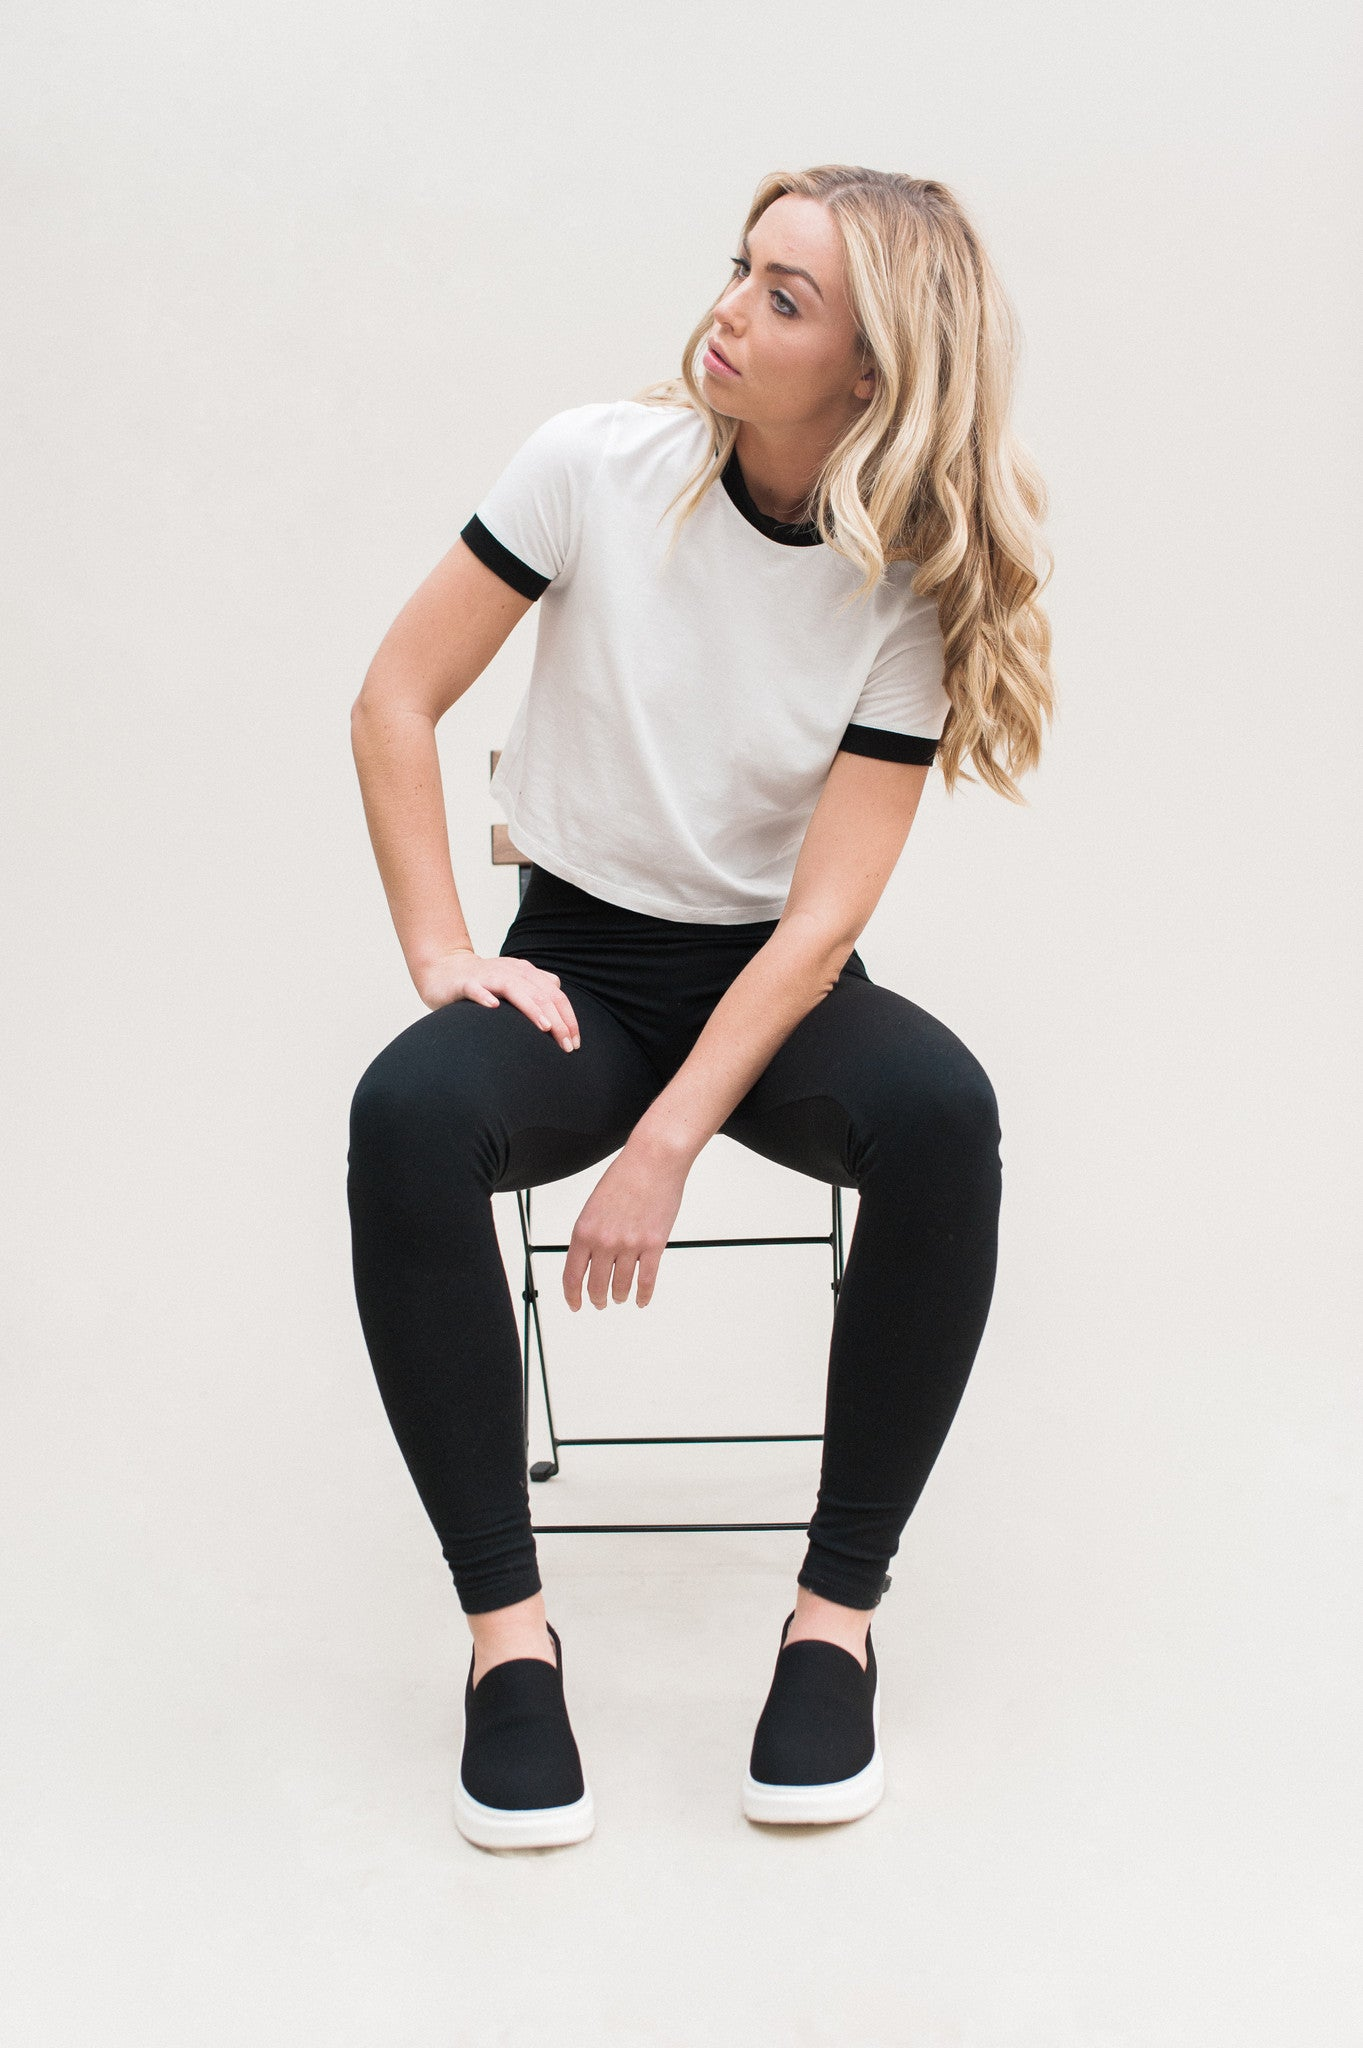 Contrast Tee. White organic tee shirt with black contrast trim.